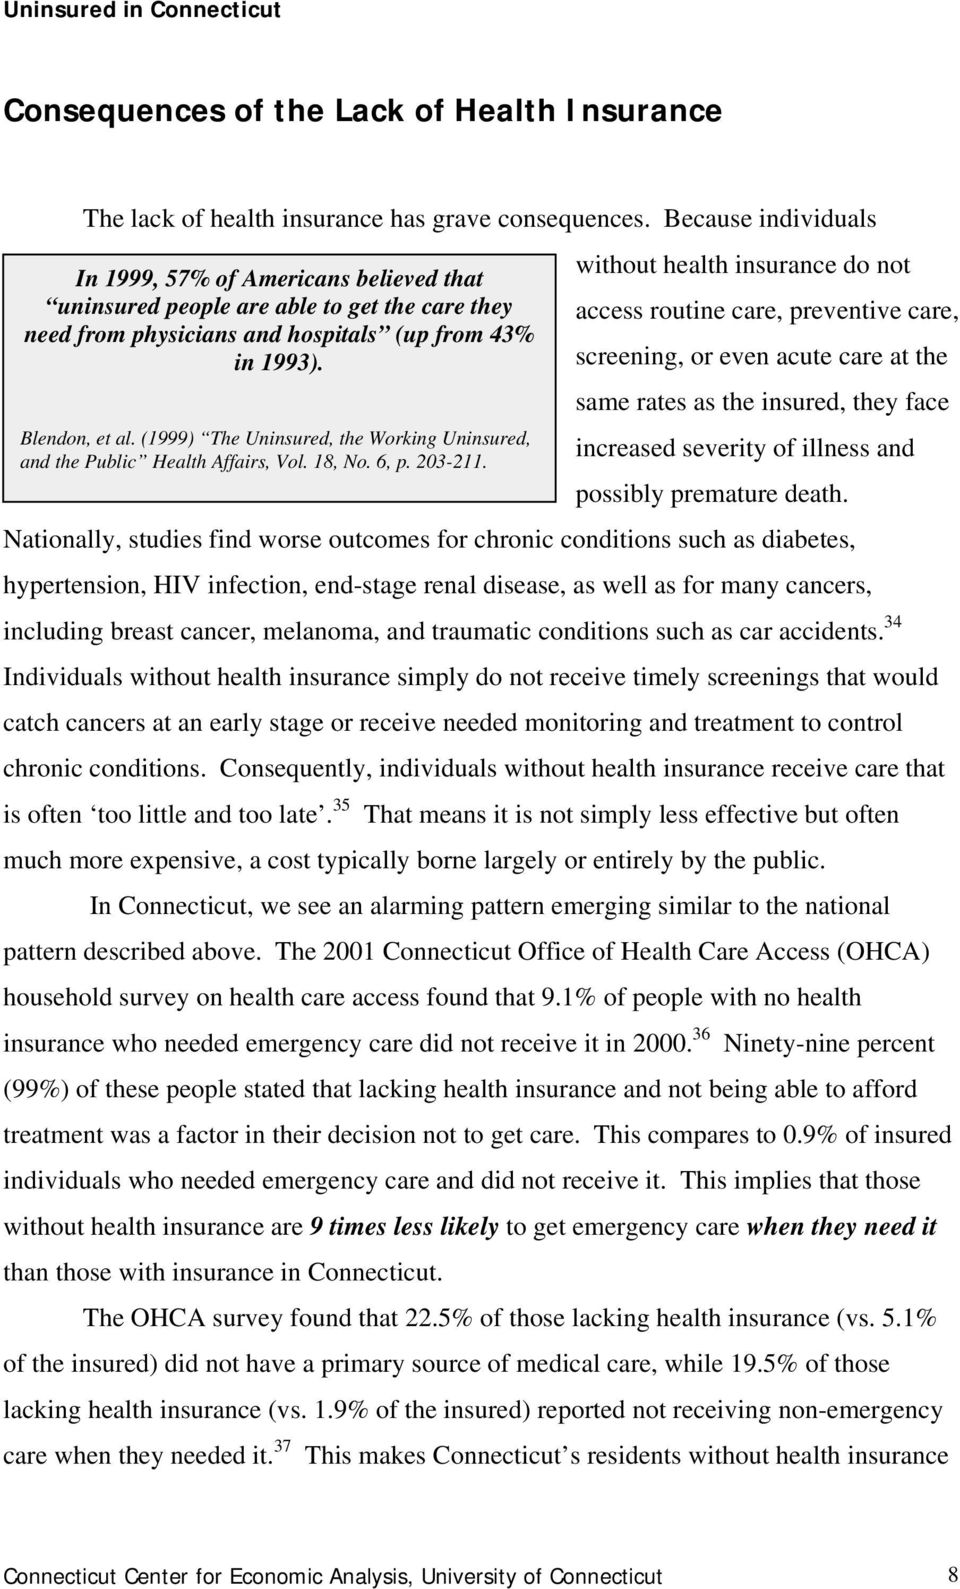 (1999) The Uninsured, the Working Uninsured, and the Public Health Affairs, Vol. 18, No. 6, p. 203-211.